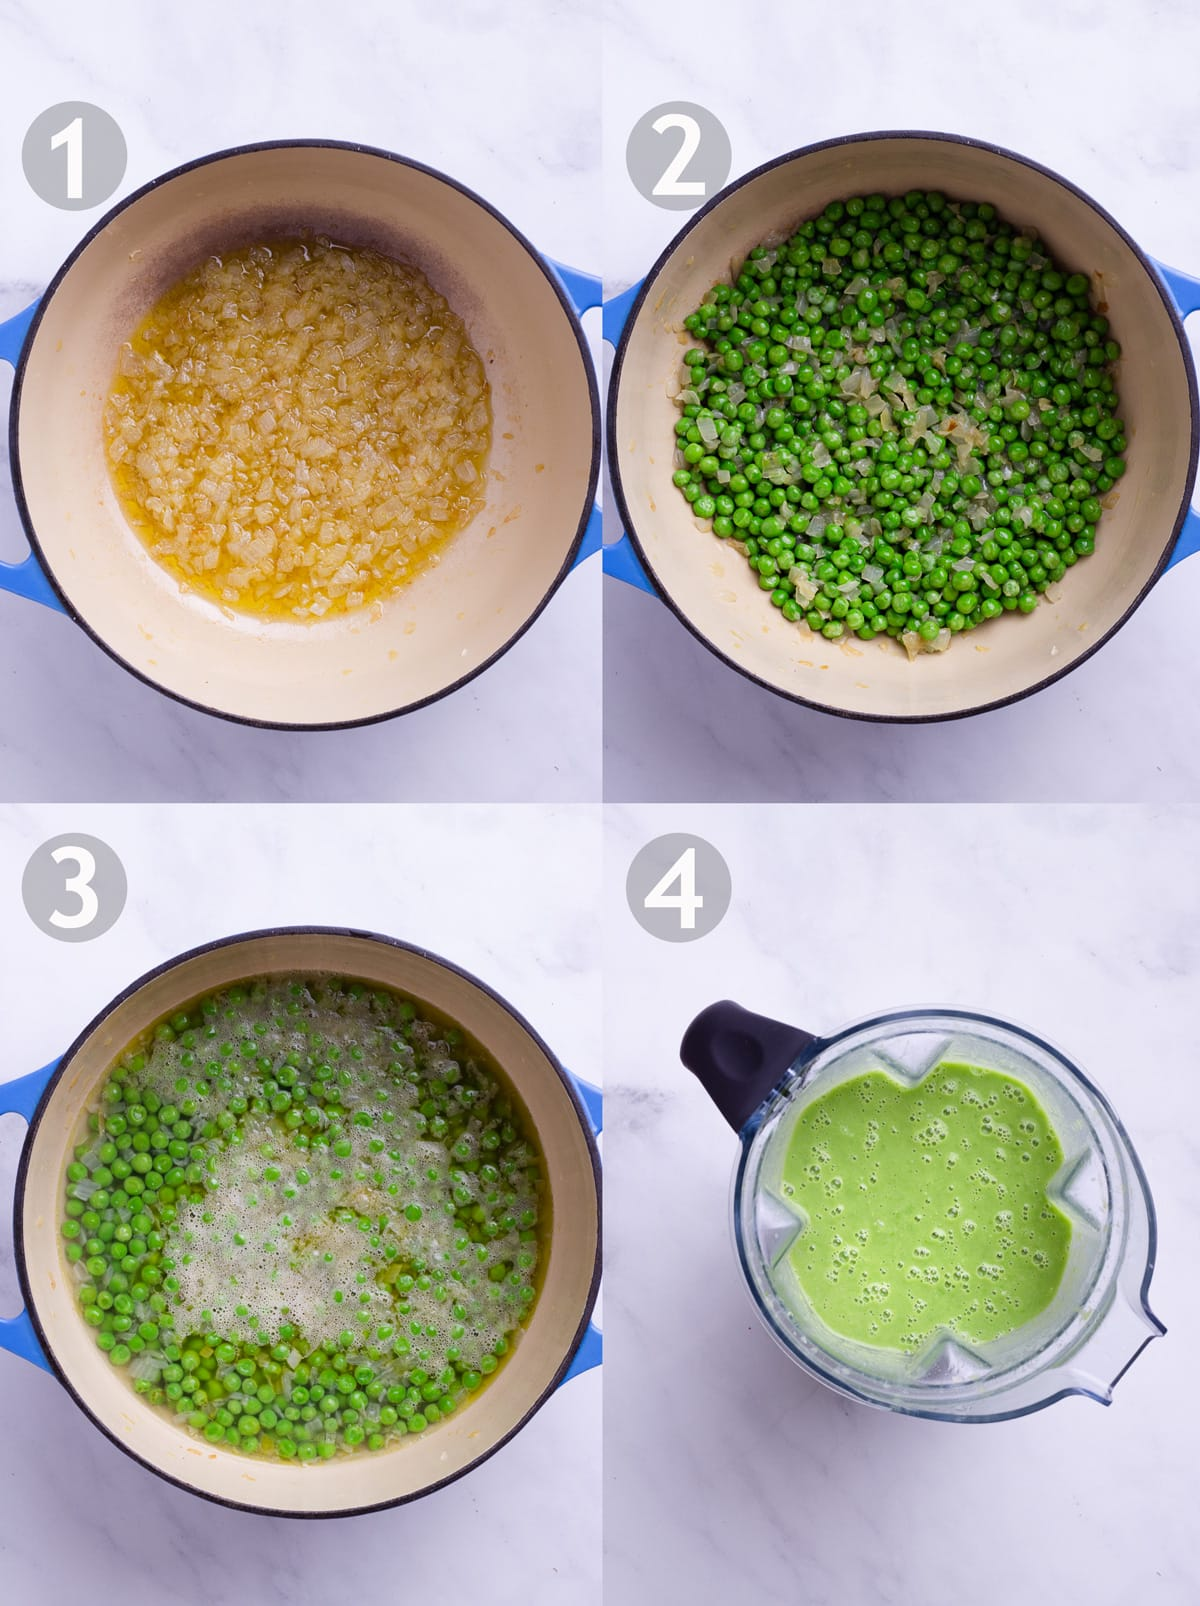 Side-by-side photos showing steps to make soup, including sautéing onion, adding peas, boiling with water and pureeing in a blender.